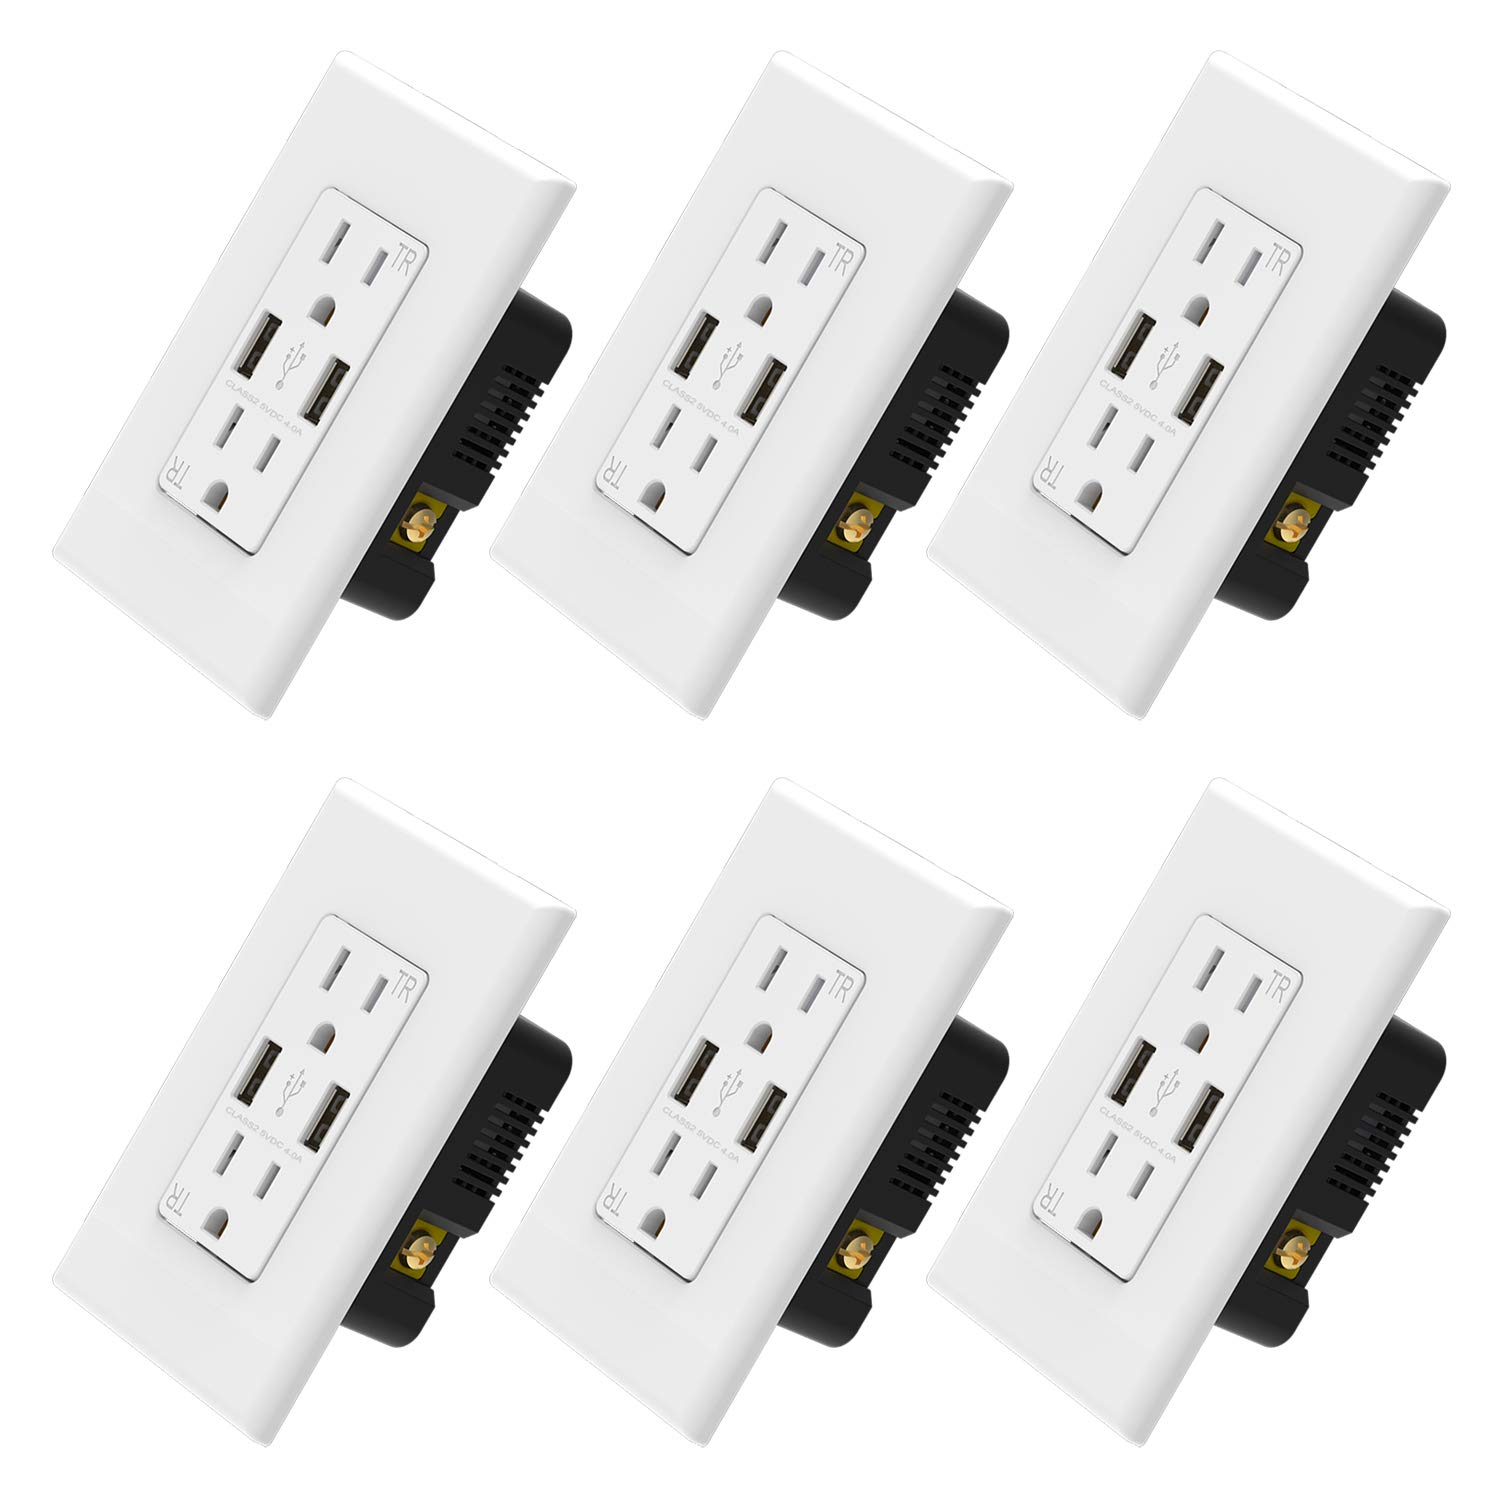 ELEGRP USB Charger Wall Outlet, Dual High Speed 4.0 Amp USB Ports with Smart Chip, 15 Amp Duplex Tamper Resistant Receptacle, Wall Plate Included, UL Listed (6 Pack, White)